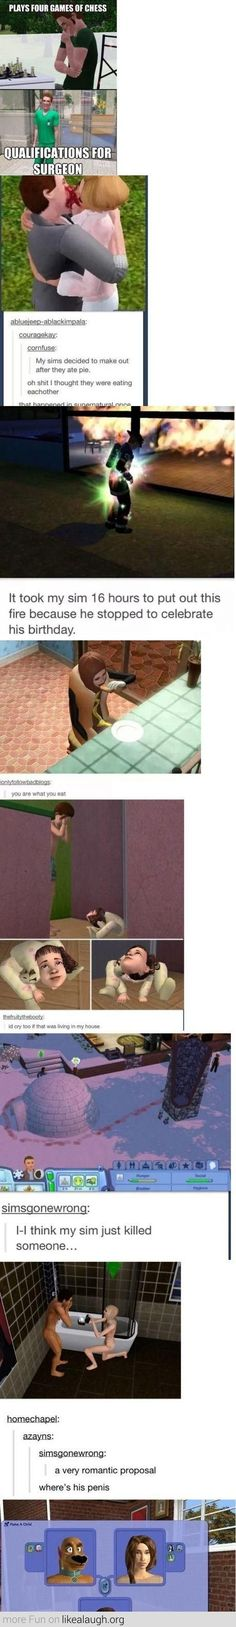 I love the sims. I've done the pie one. Its even more funny watching it.: